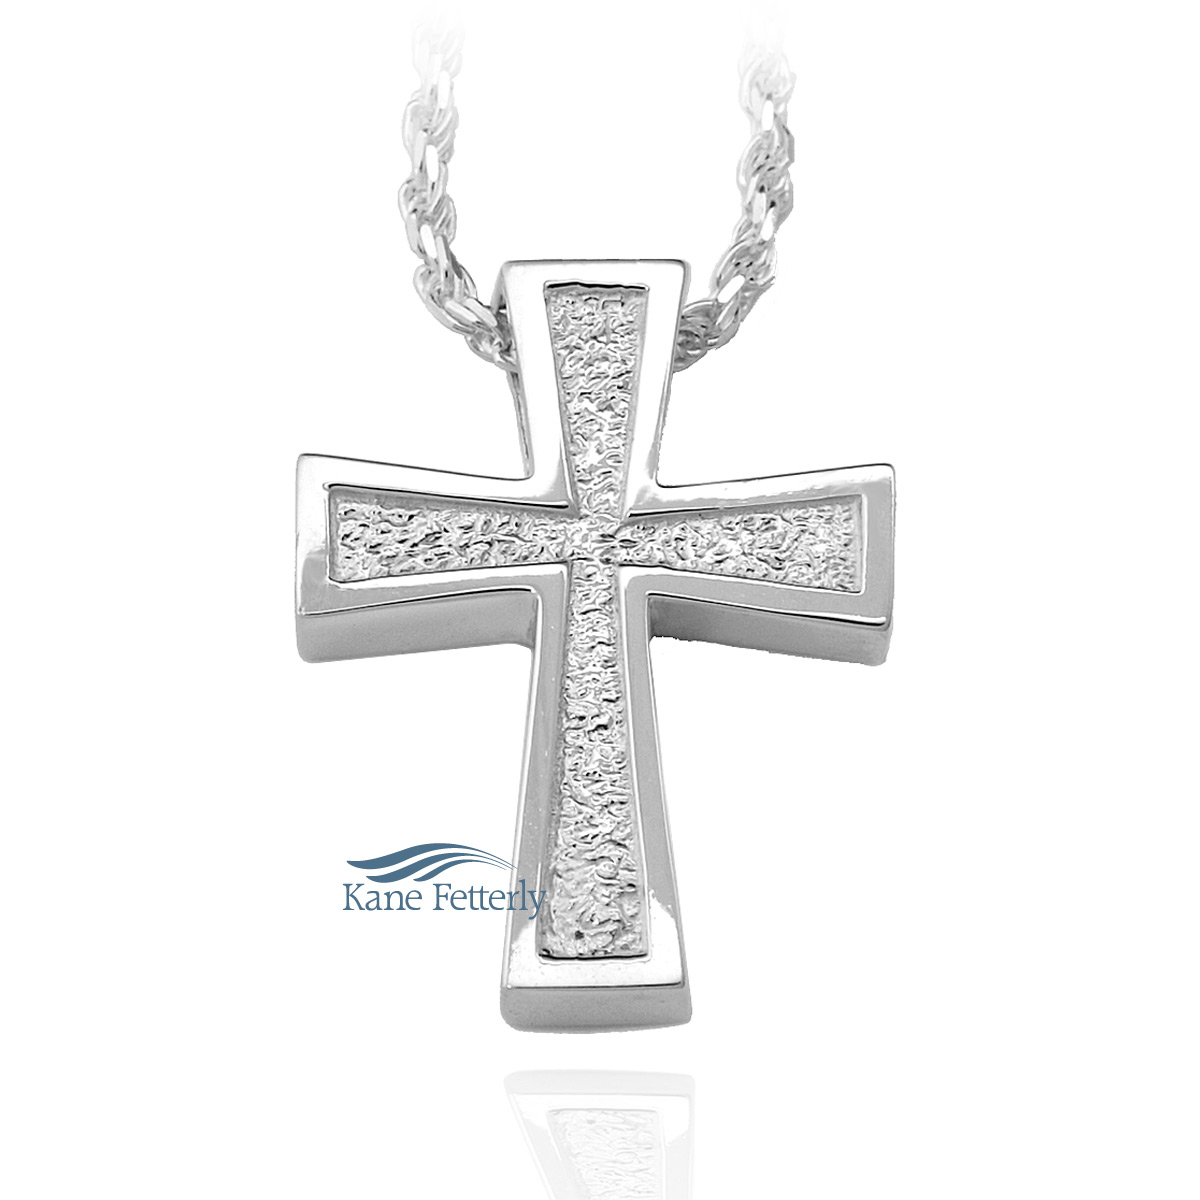 J0164 Cross pendant in sterling silver